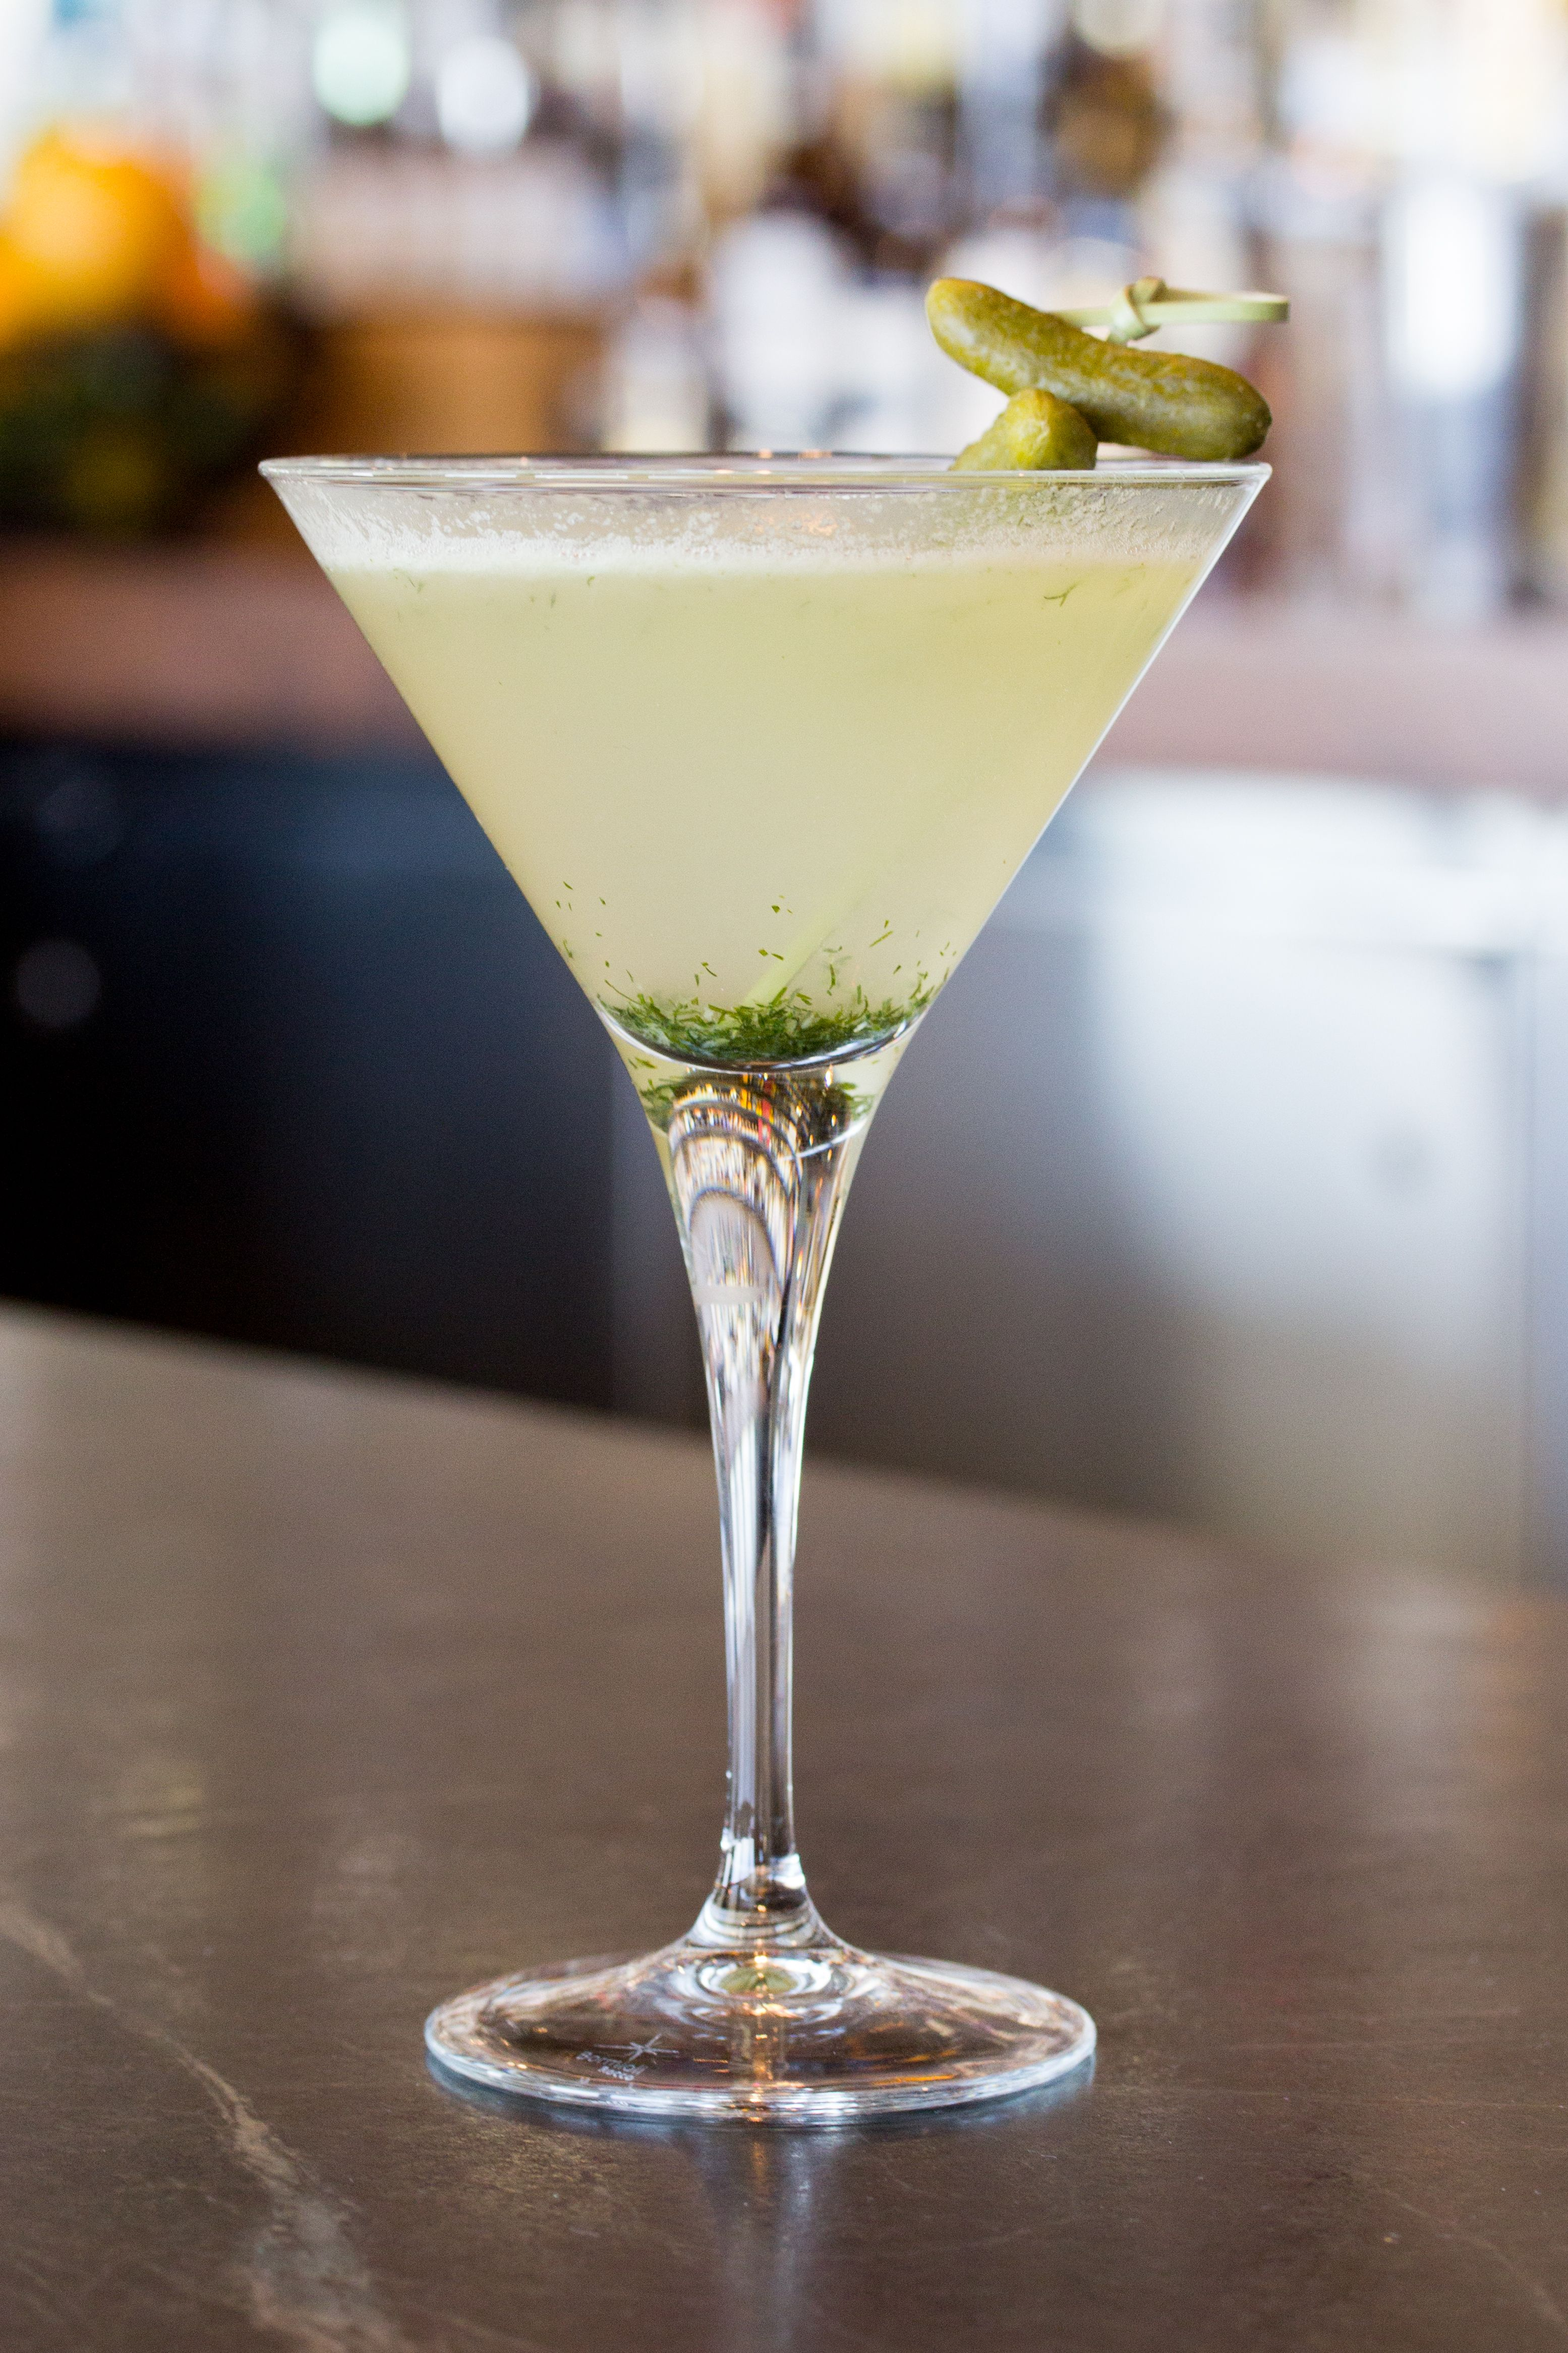 Dill Pickle - Dillon's Gin, Grand Marnier, White Cranberry, Lime